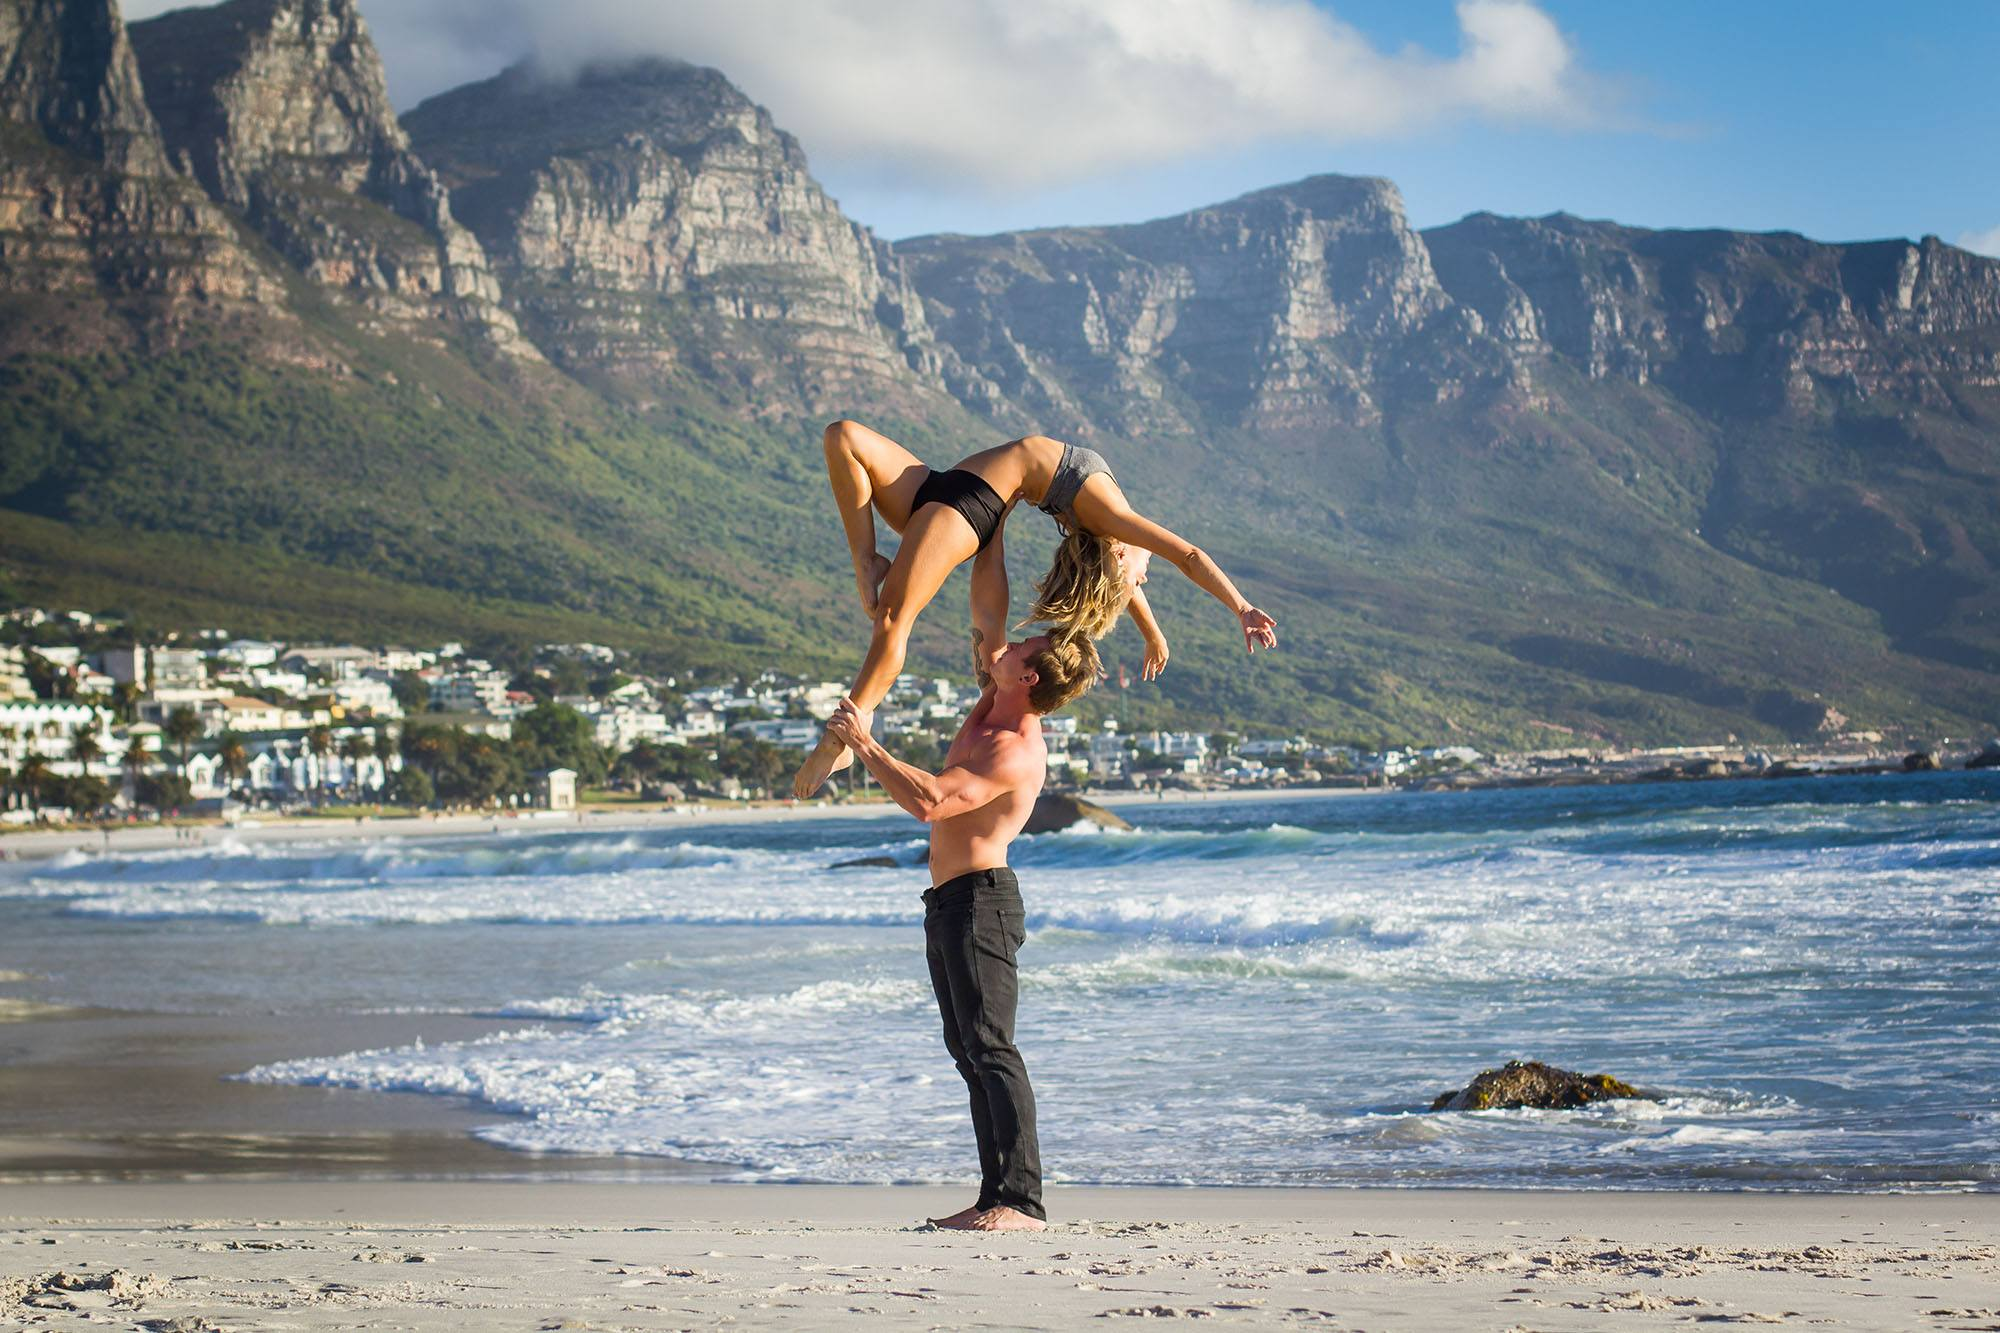 Nicole and James soaring on Glen beach, Cape Town (Amanda Webb)